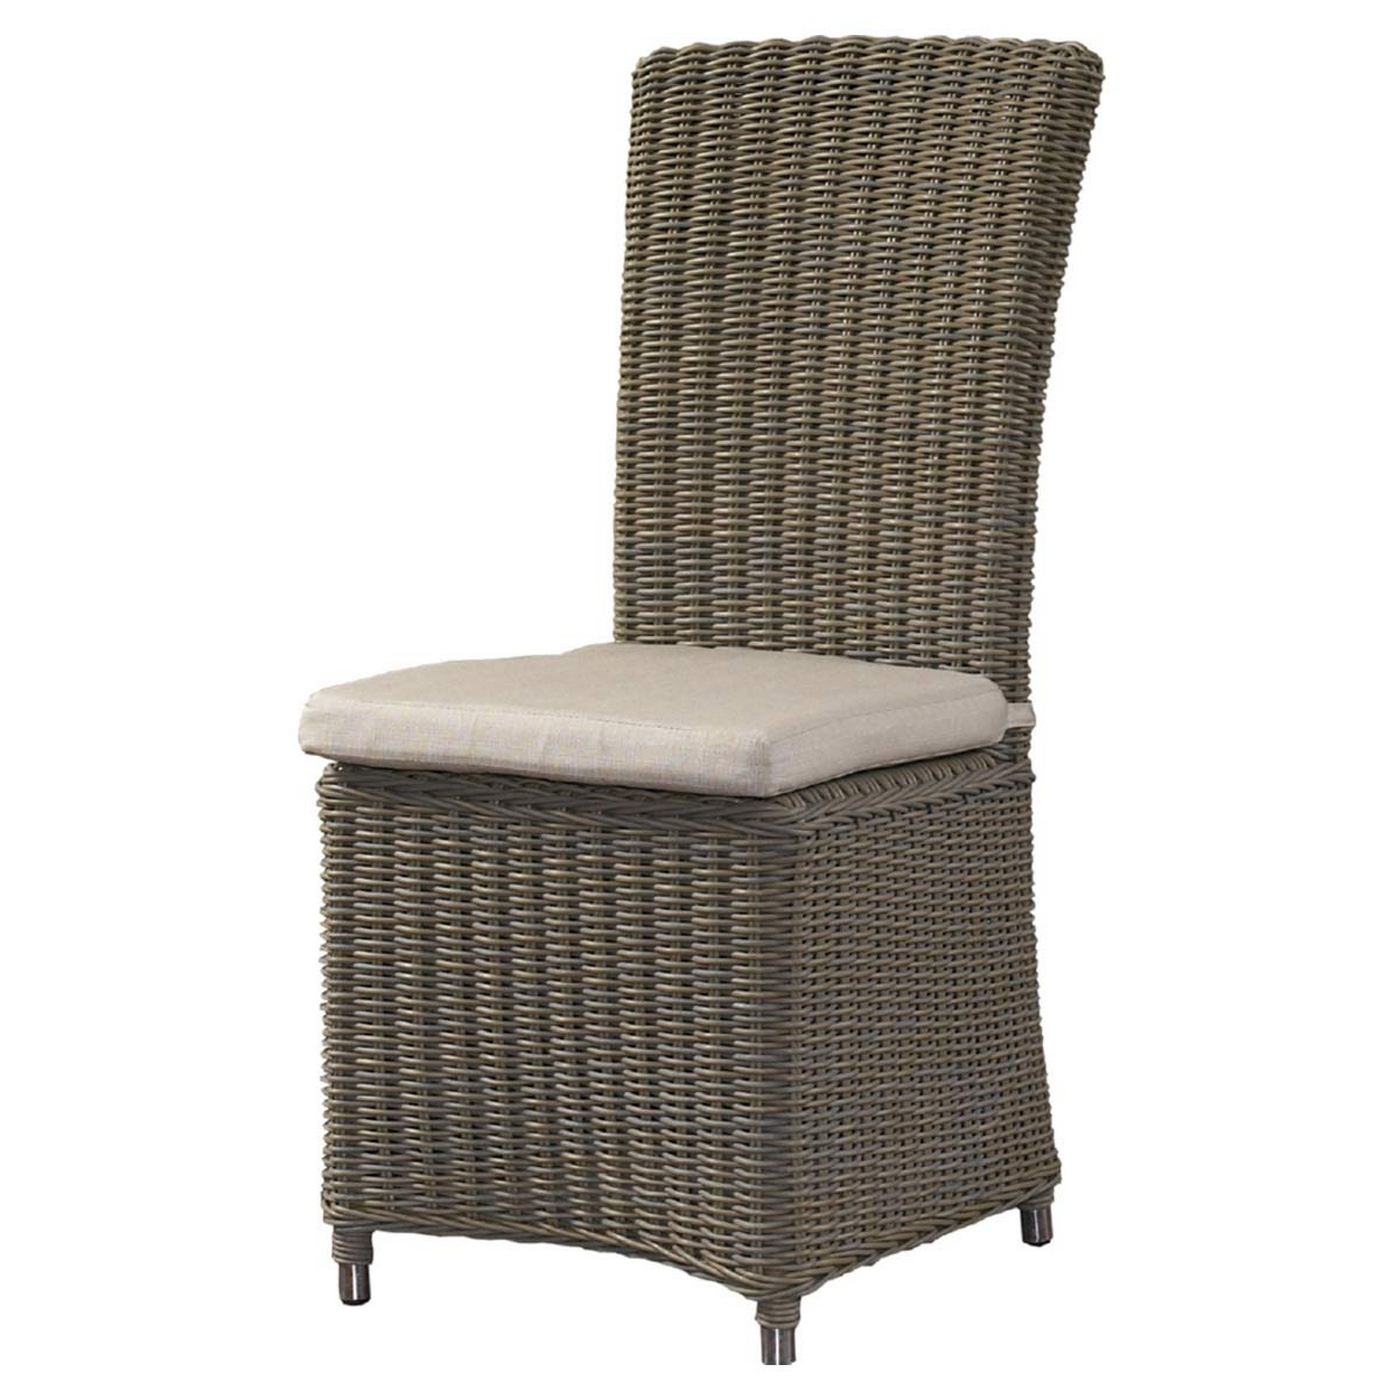 Padmau0027s Plantation Outdoor Nico Dining Chair In Kubu Grey